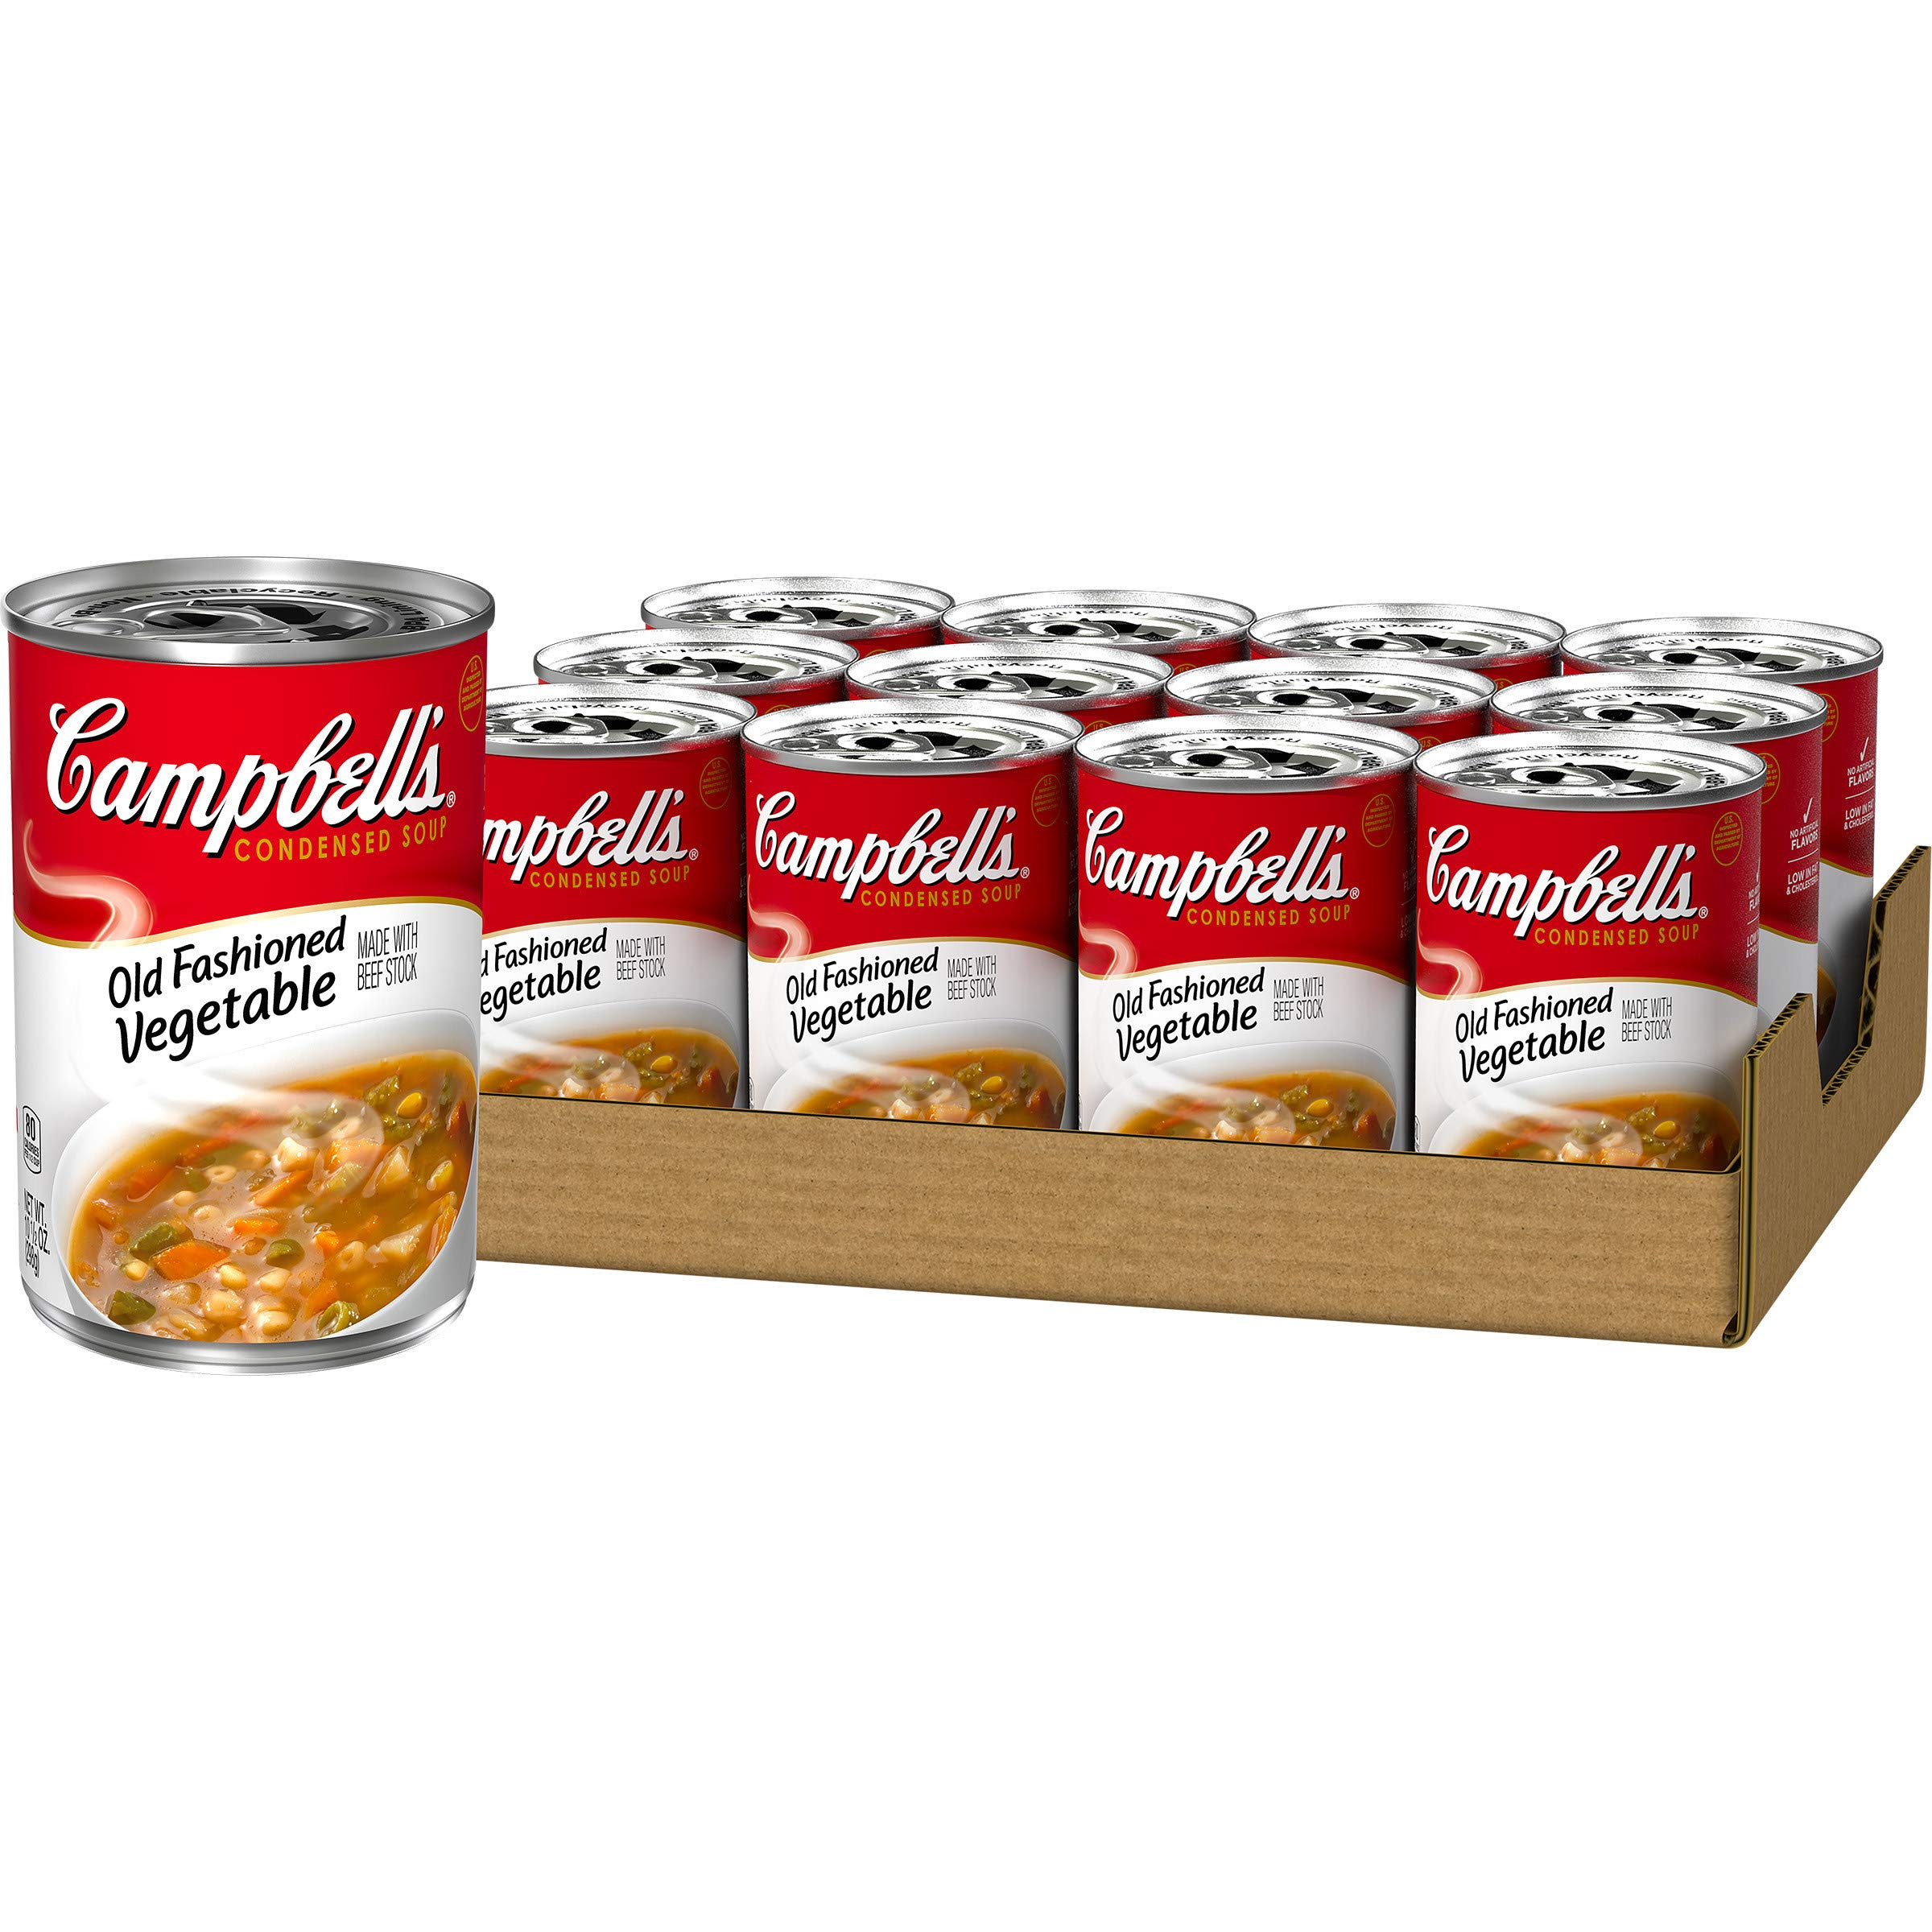 Campbell'sCondensed Old Fashioned Vegetable Soup, 10.5 oz. Can (Pack of 12)